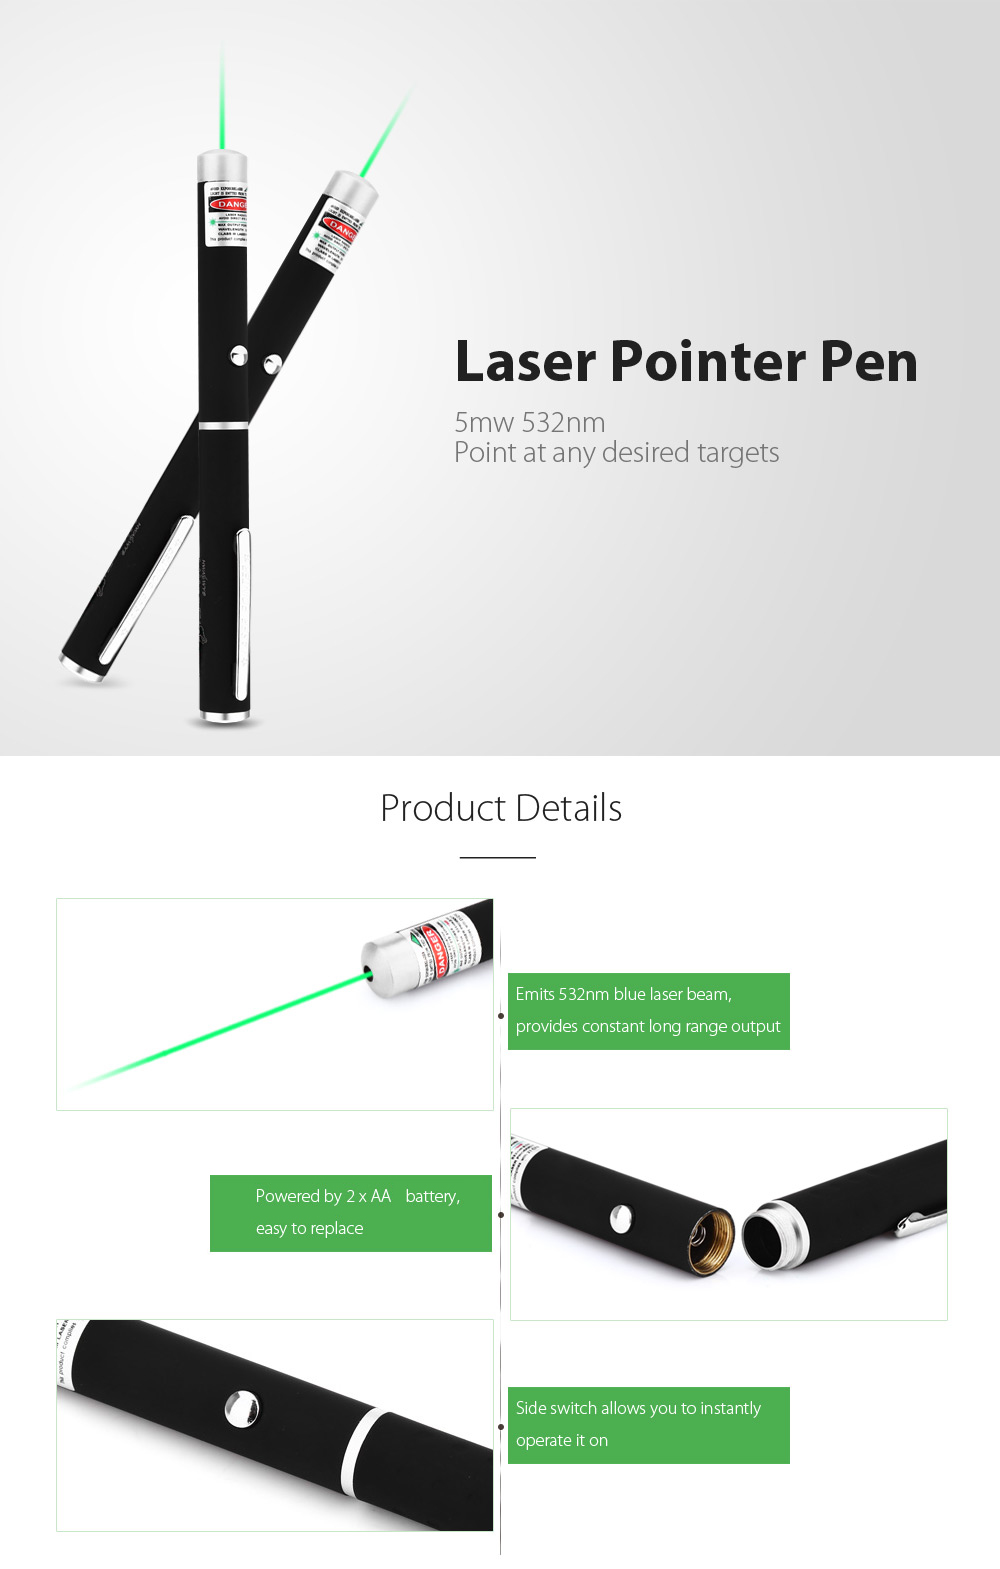 UltraFire 5mw 532nm AAA Compact Laser Pointer